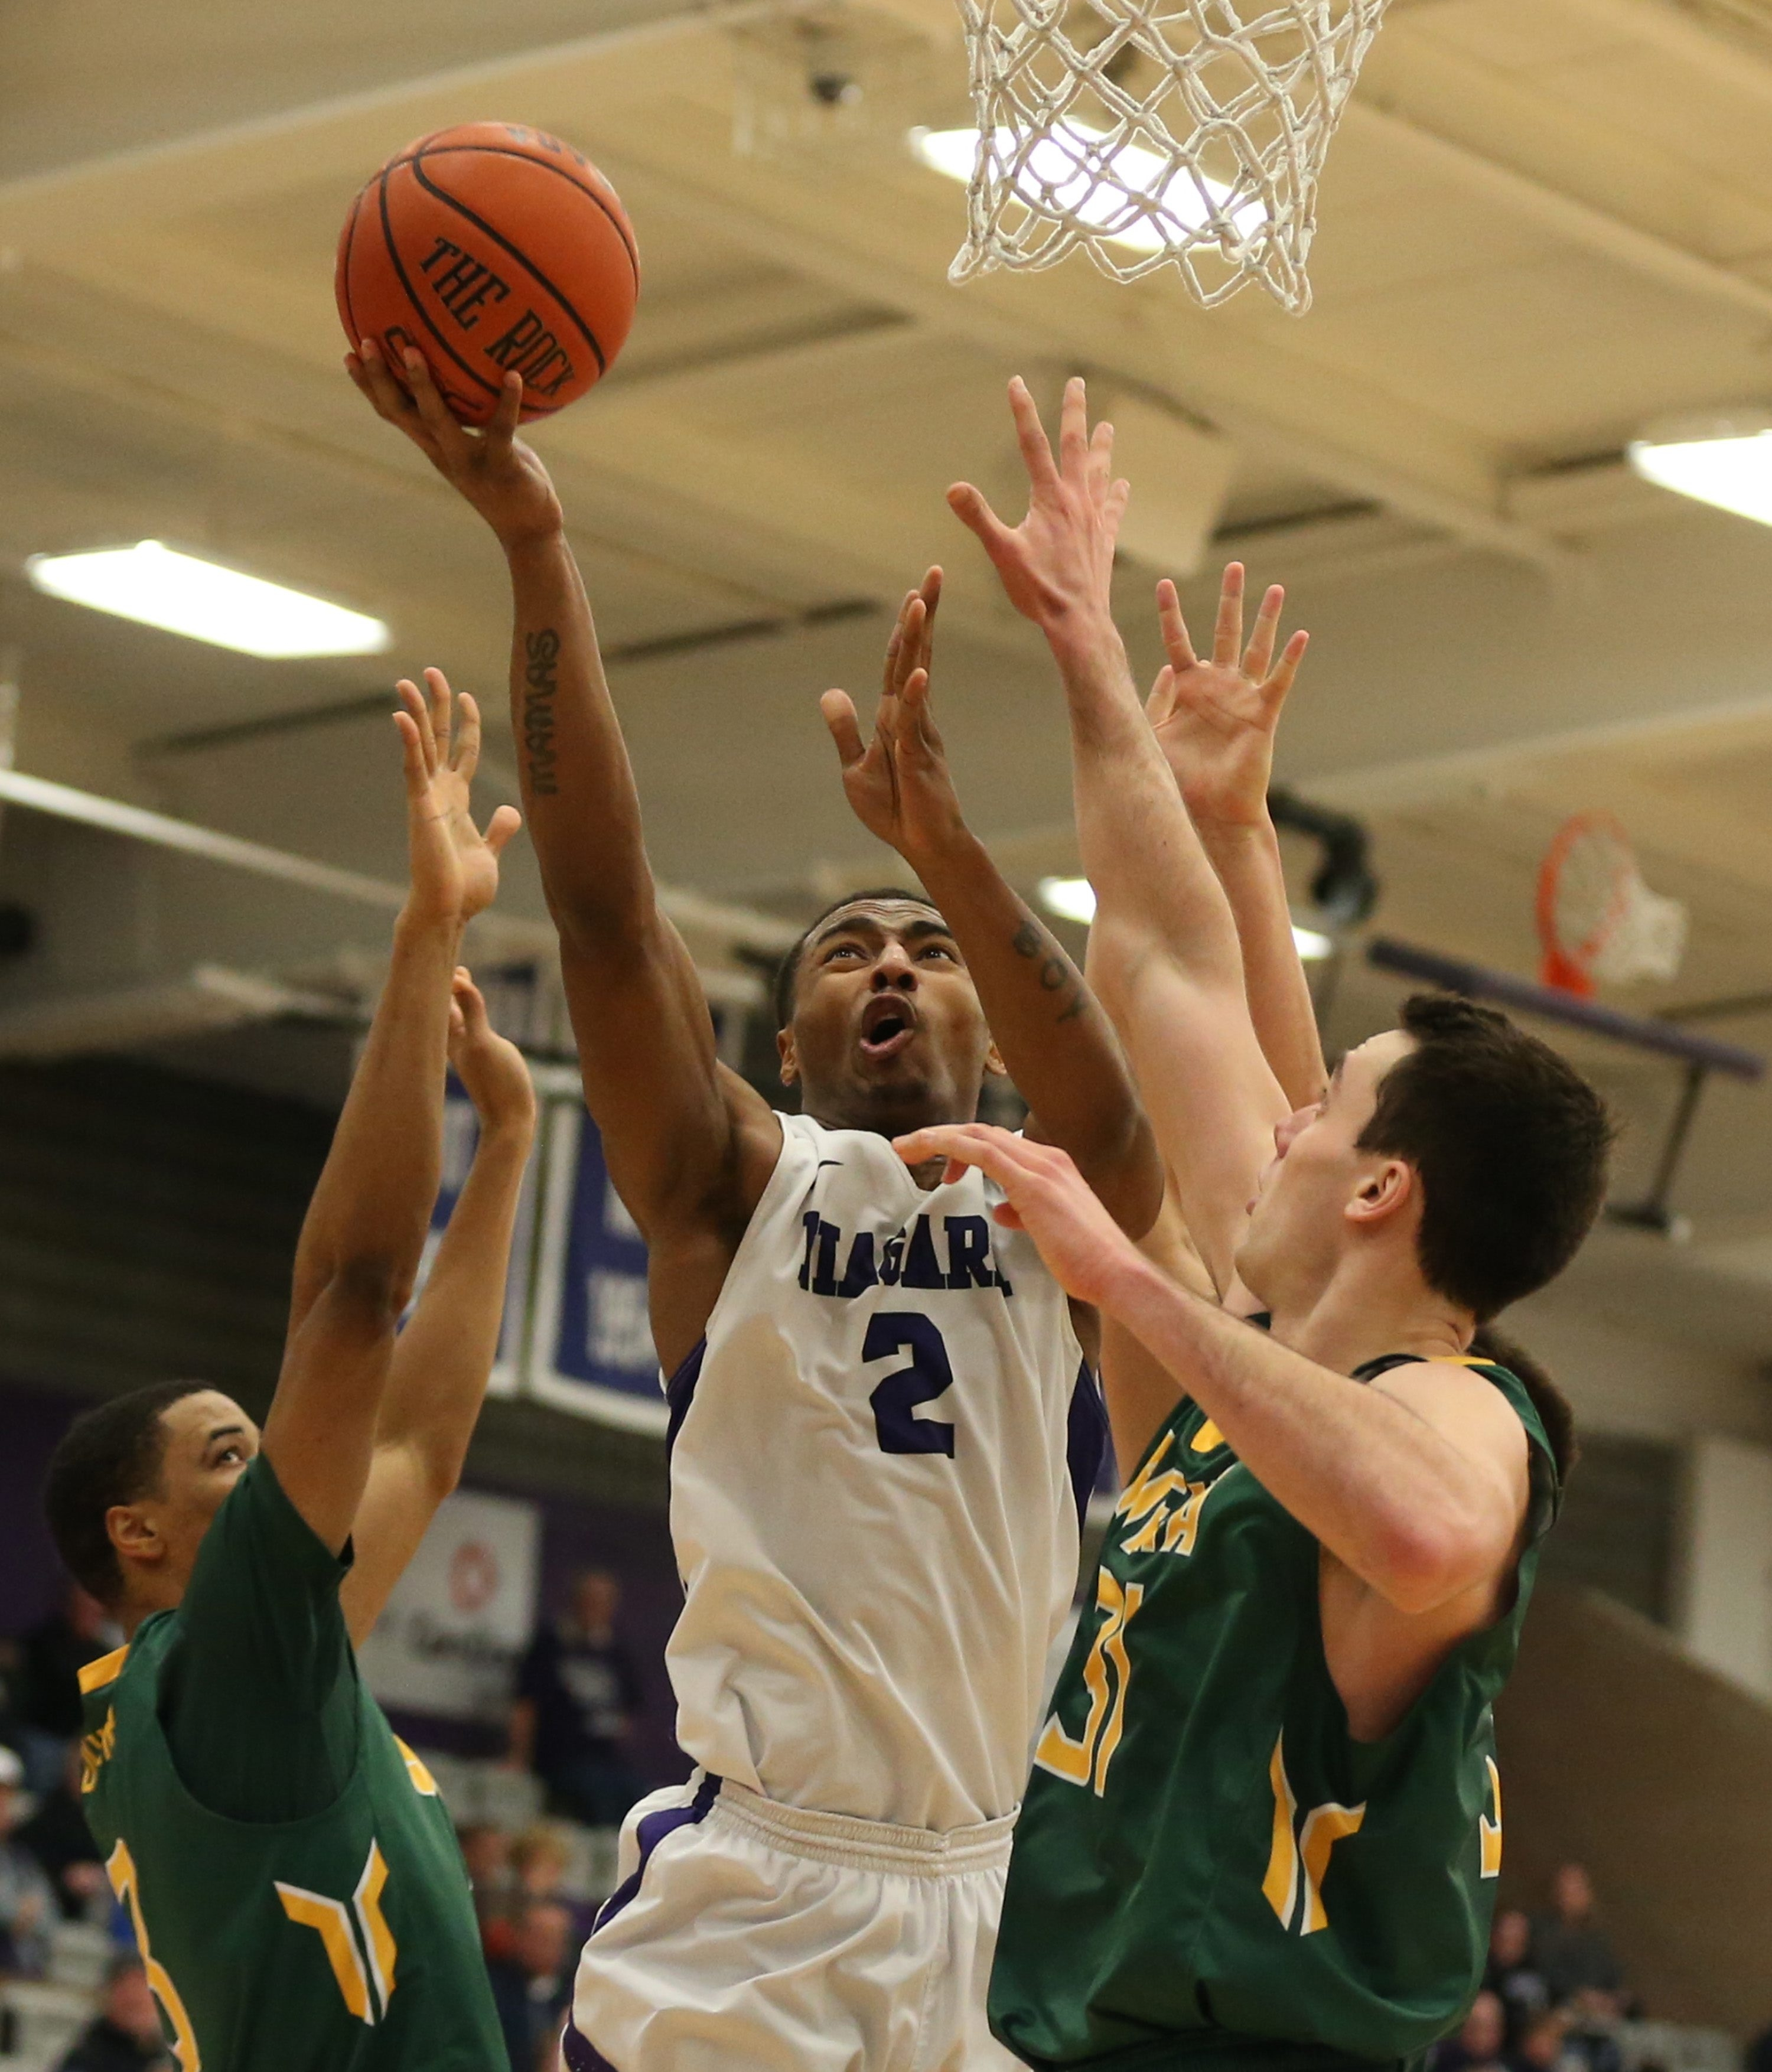 Niagara's Emile Blackman drives to the basket on Siena's Brett Bisping, right, in the second half.